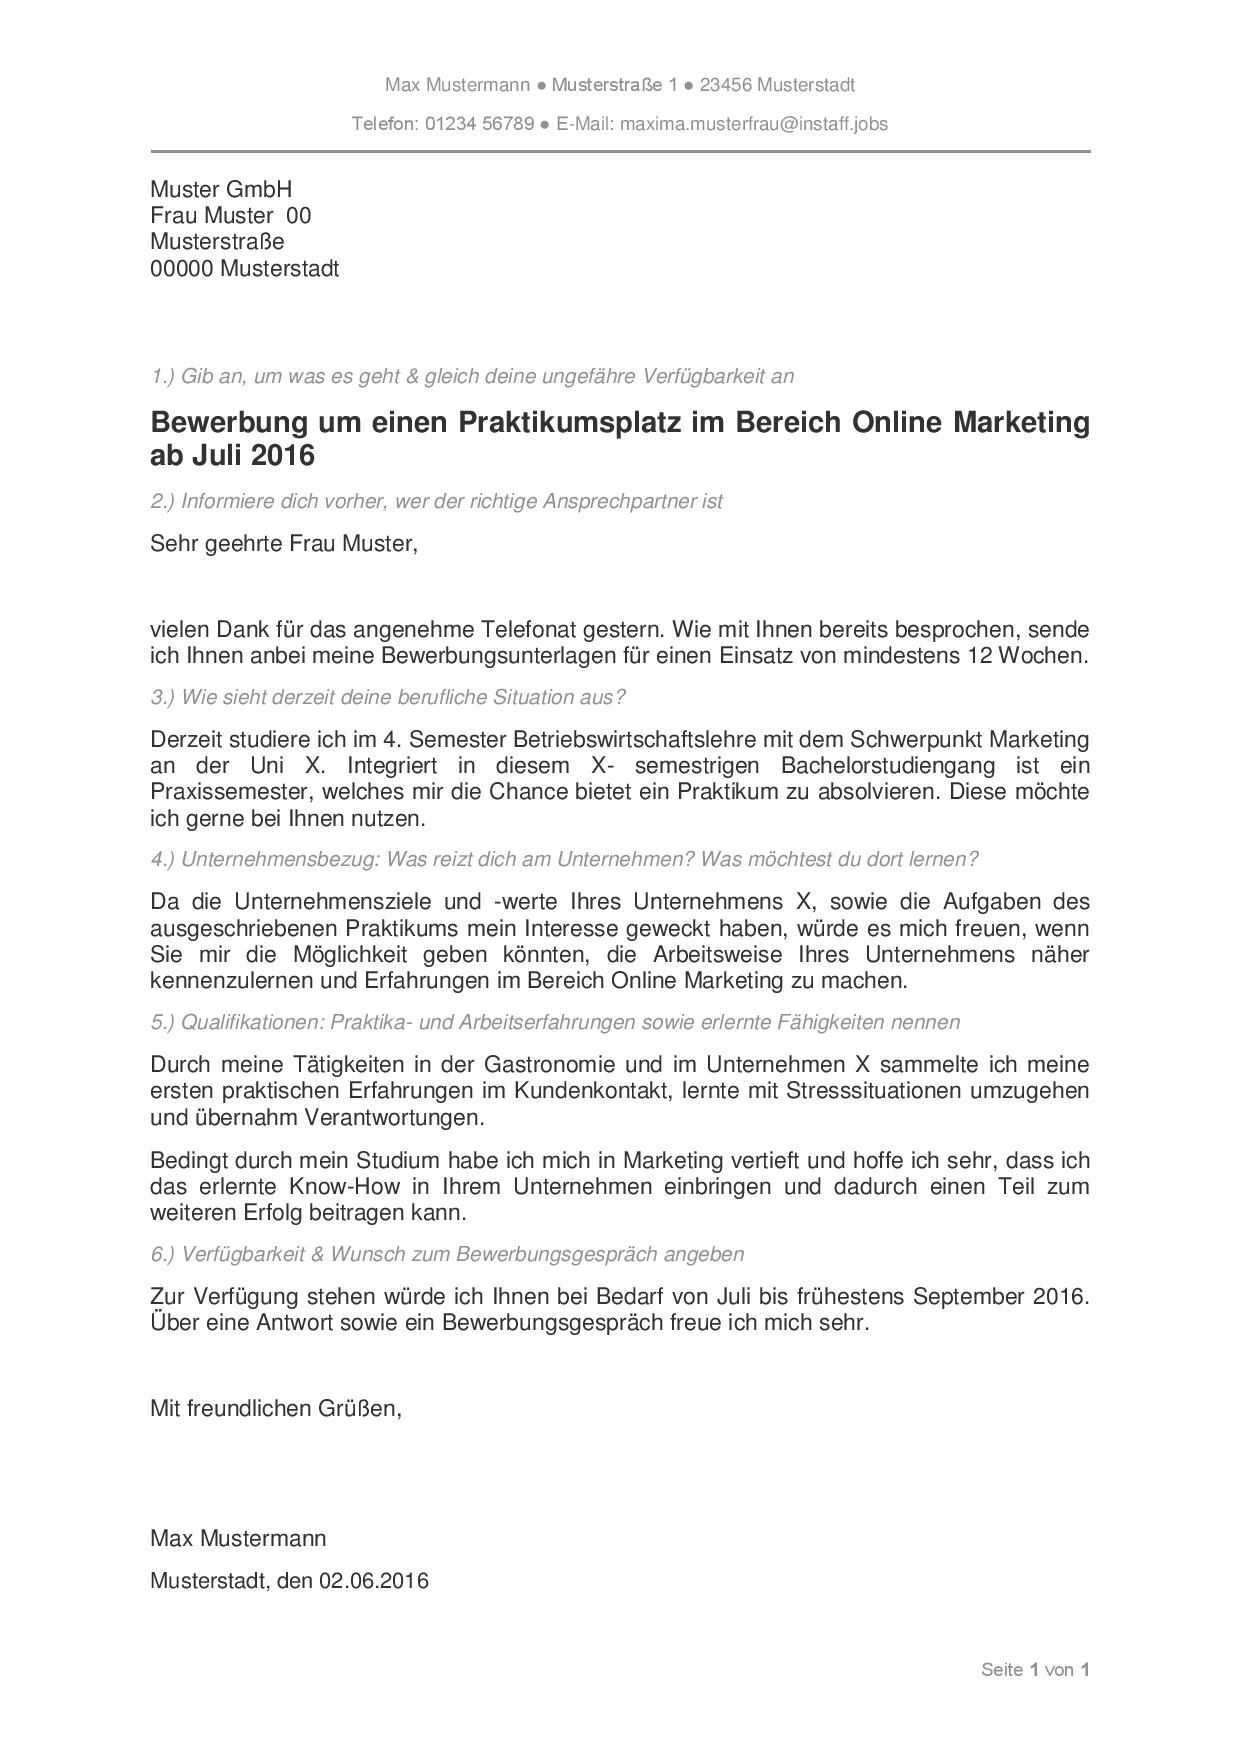 Muster Bewerbungsschreiben Bewerbungsschreiben Praktikum Bewerbung Muster Als Bewerbungen Jobs Pdf Instaff Word De In 2020 Document Templates Resume Types Of Resumes